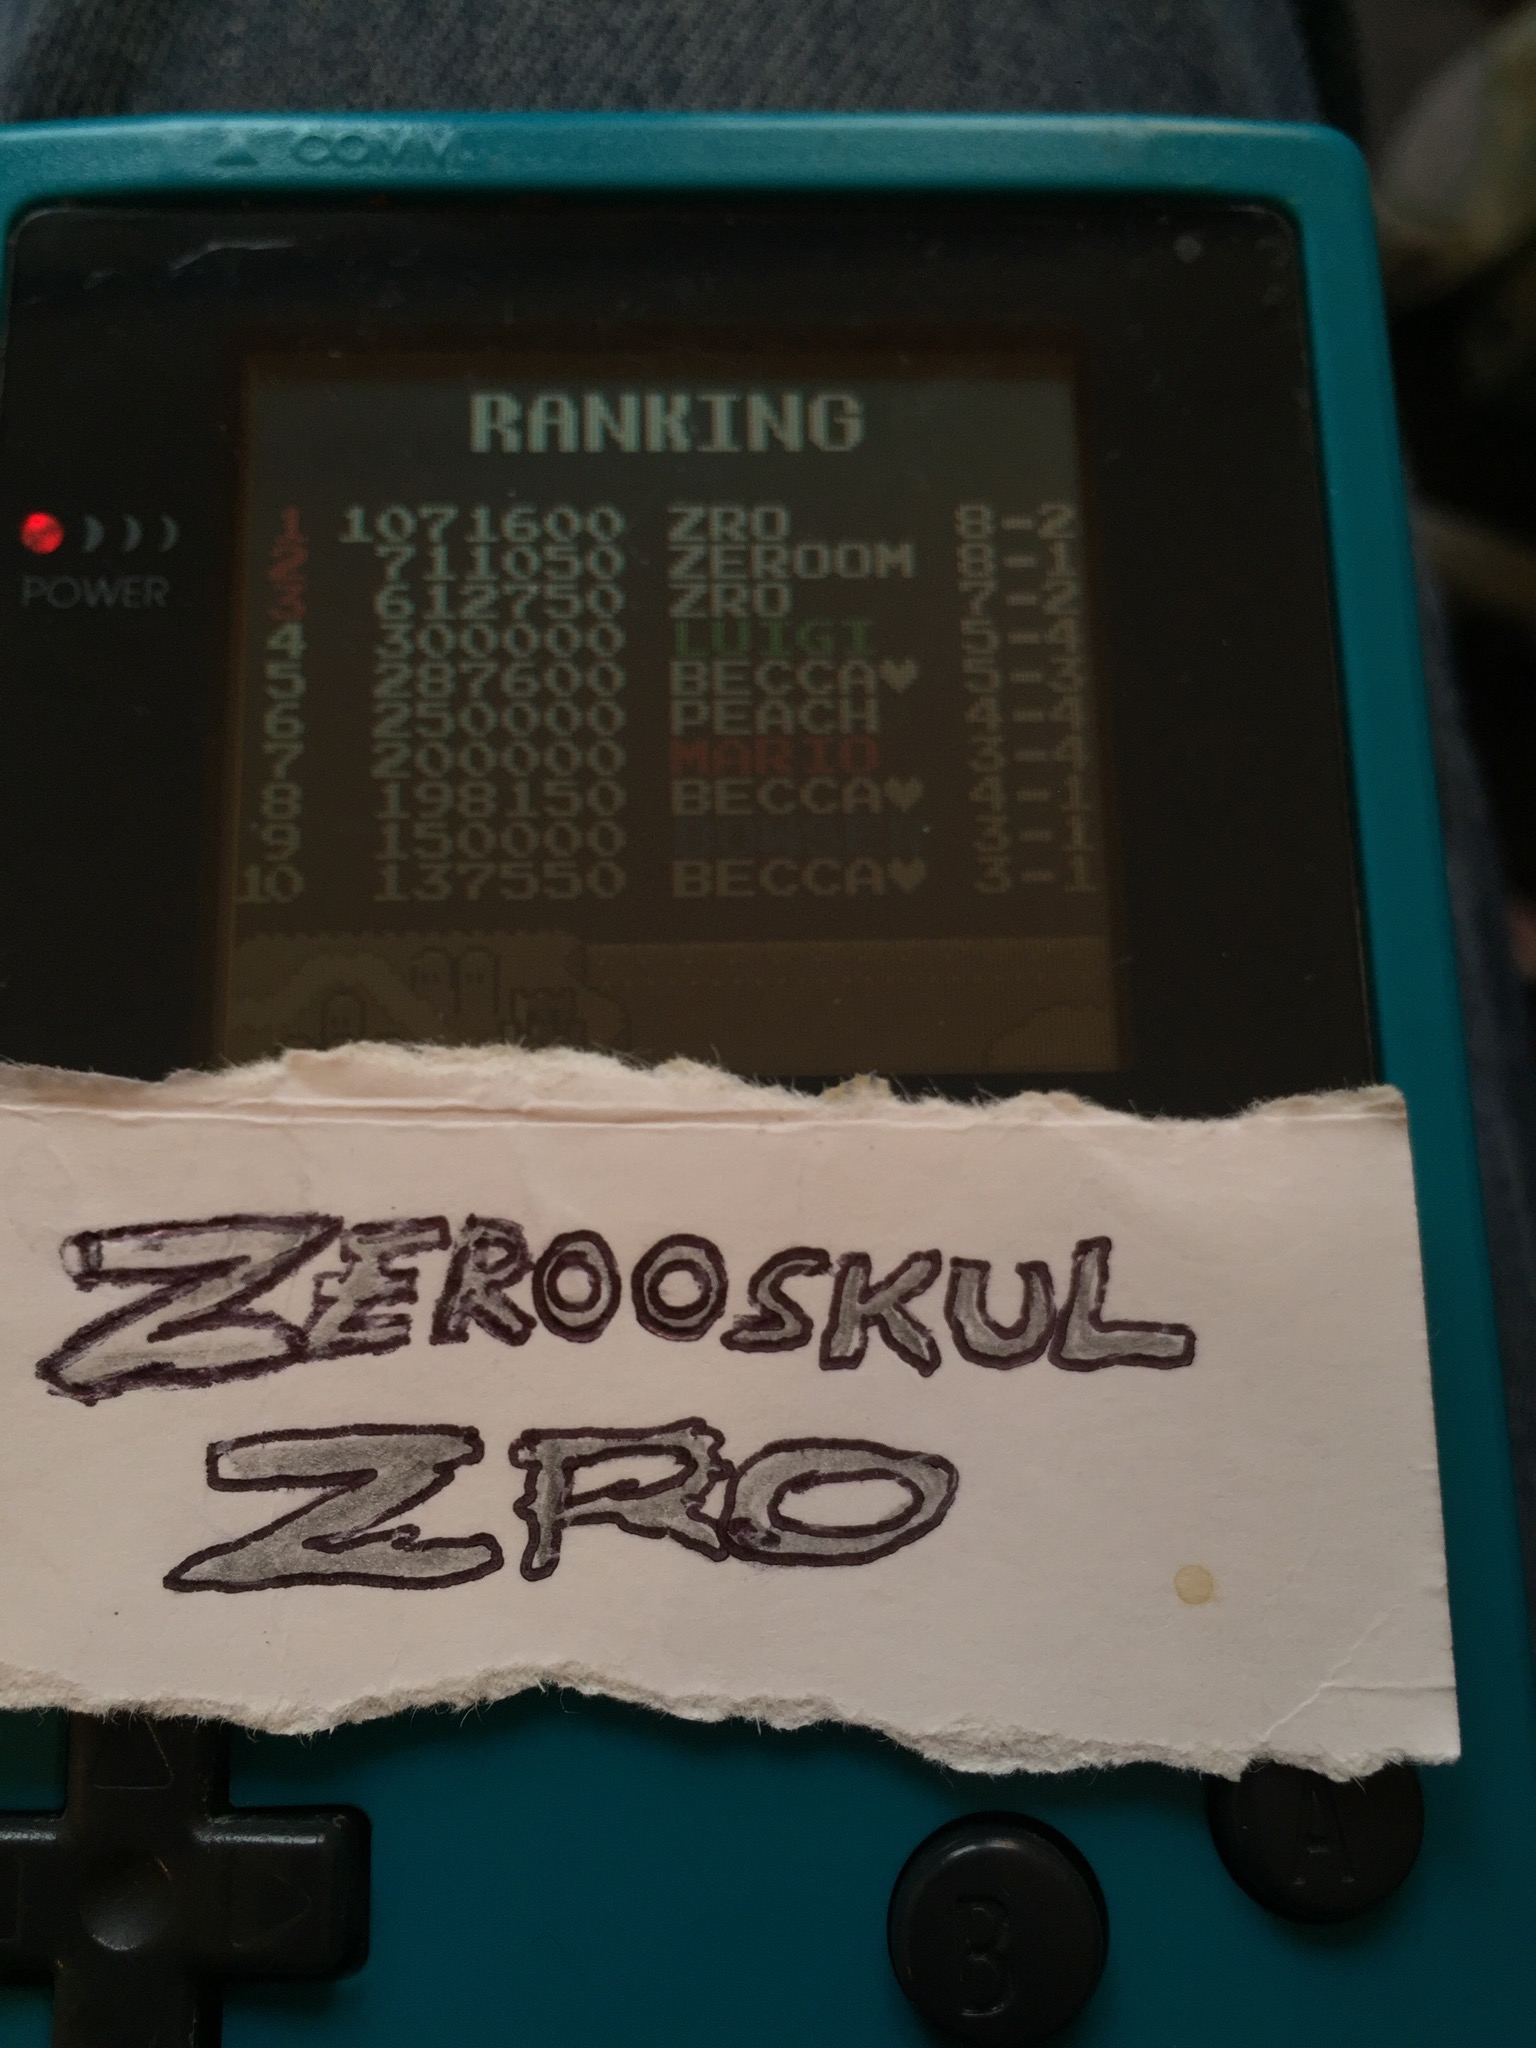 zerooskul: Super Mario Bros Deluxe (Game Boy Color) 1,071,600 points on 2018-06-05 15:21:31